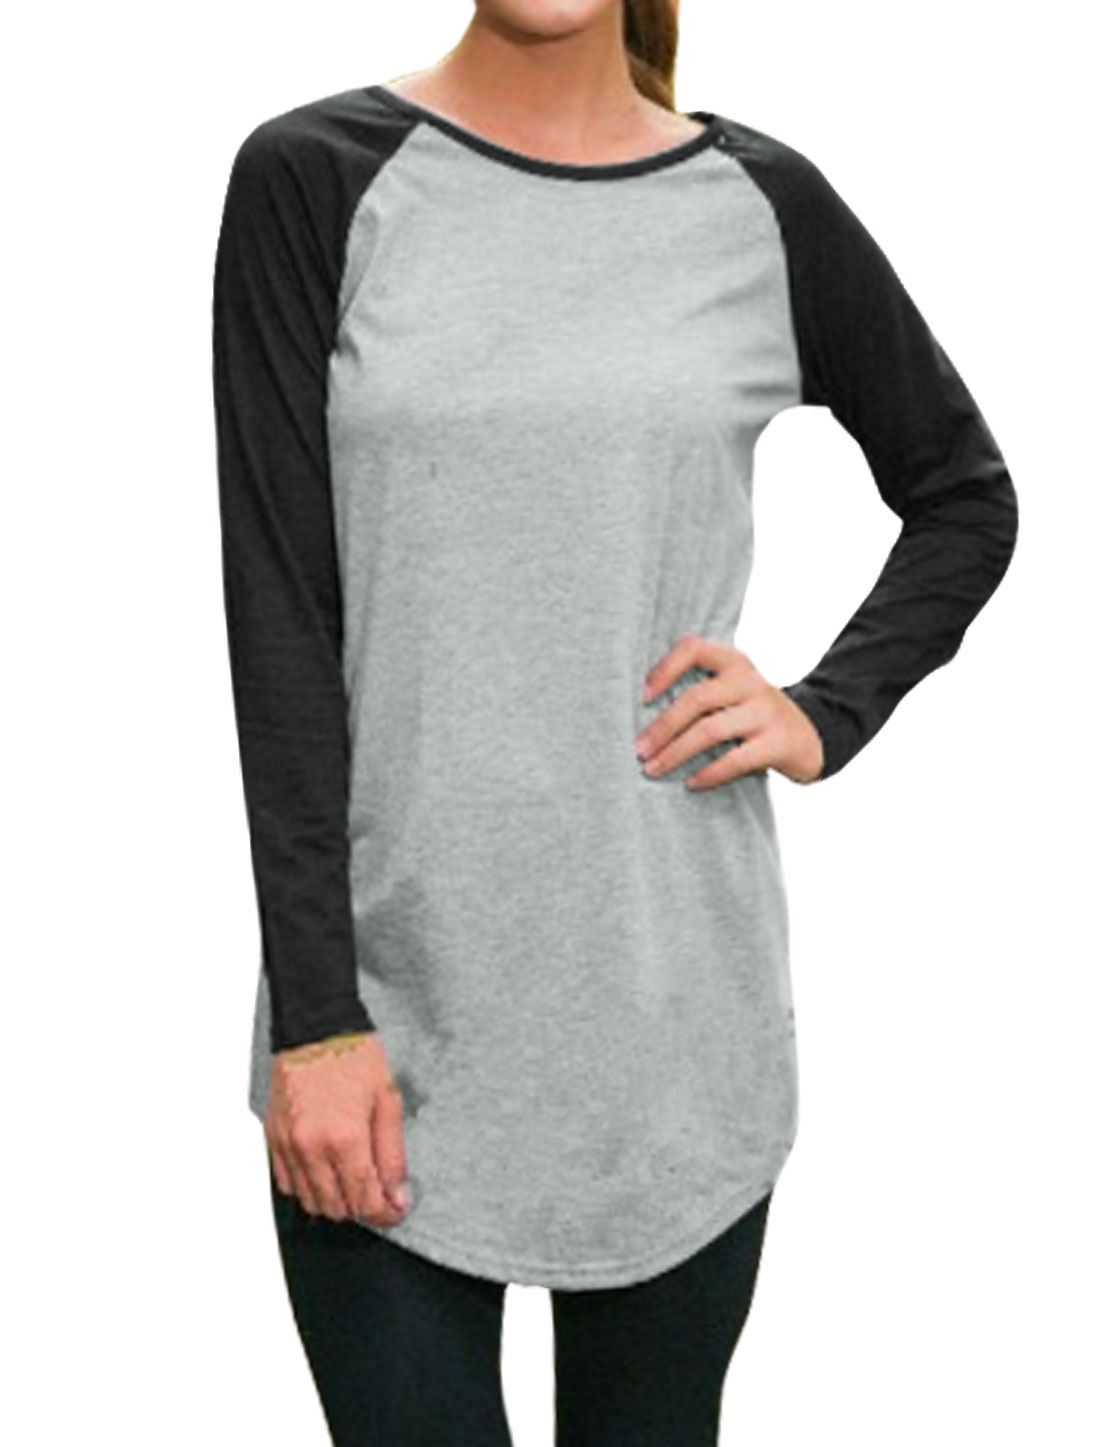 Women Raglan Sleeves Contrast Color Round Hem Loose Tunic Tee Shirt Gray S